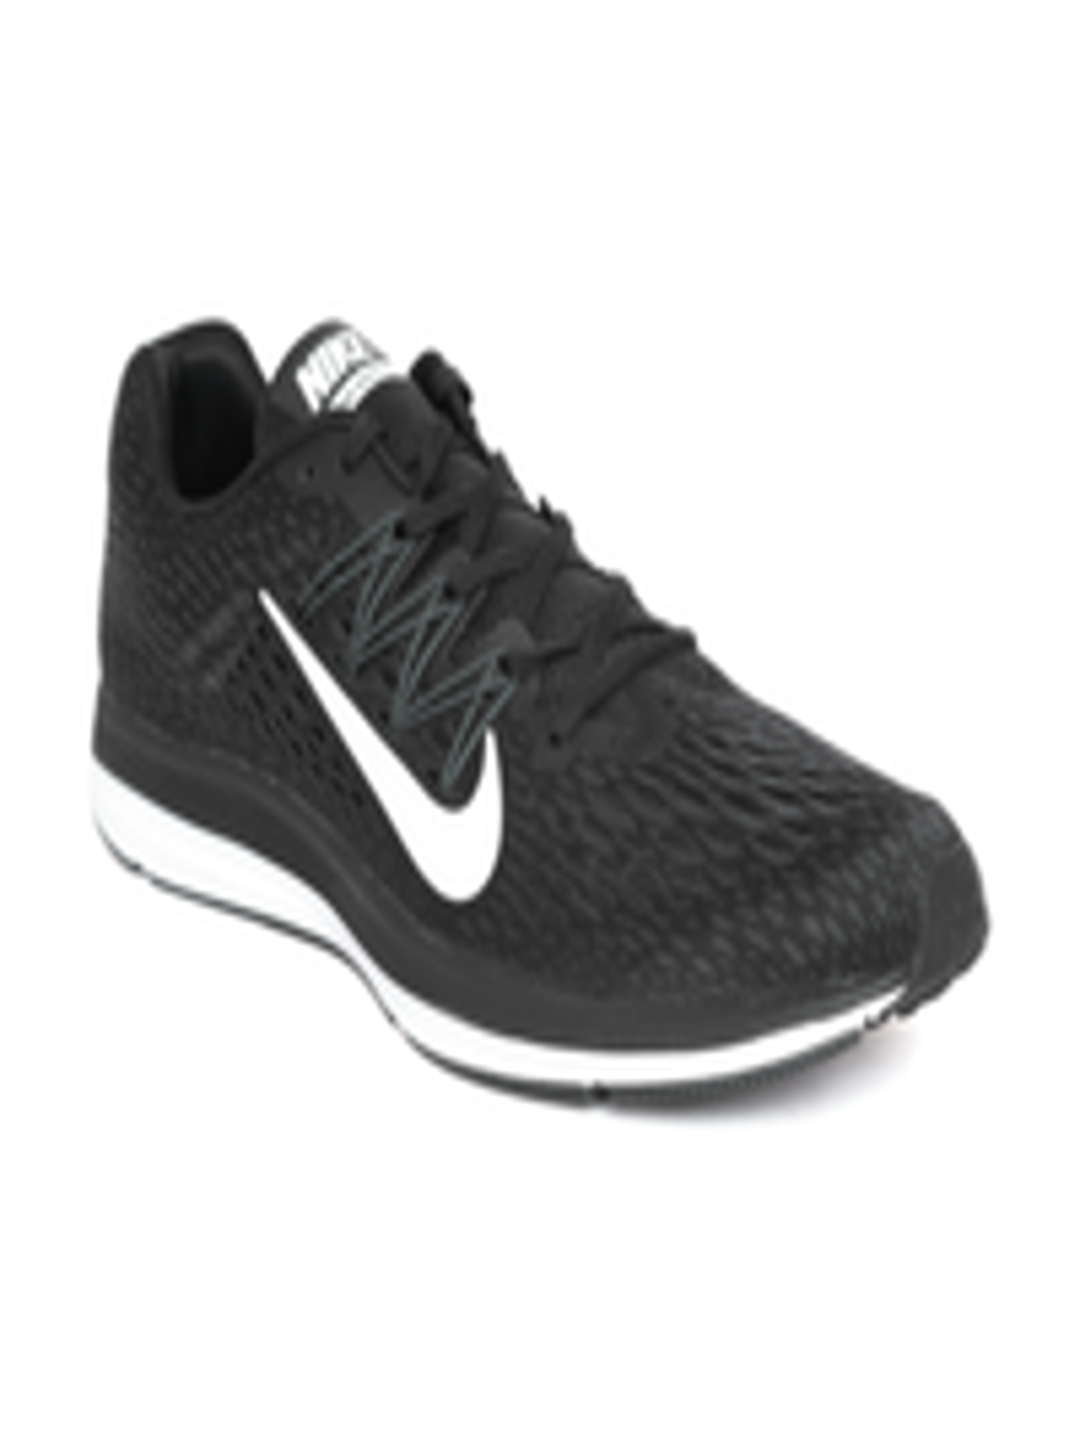 new product 8d0f3 442ab Buy Nike Men Black Zoom Winflo 5 Running Shoes - - Footwear for Men